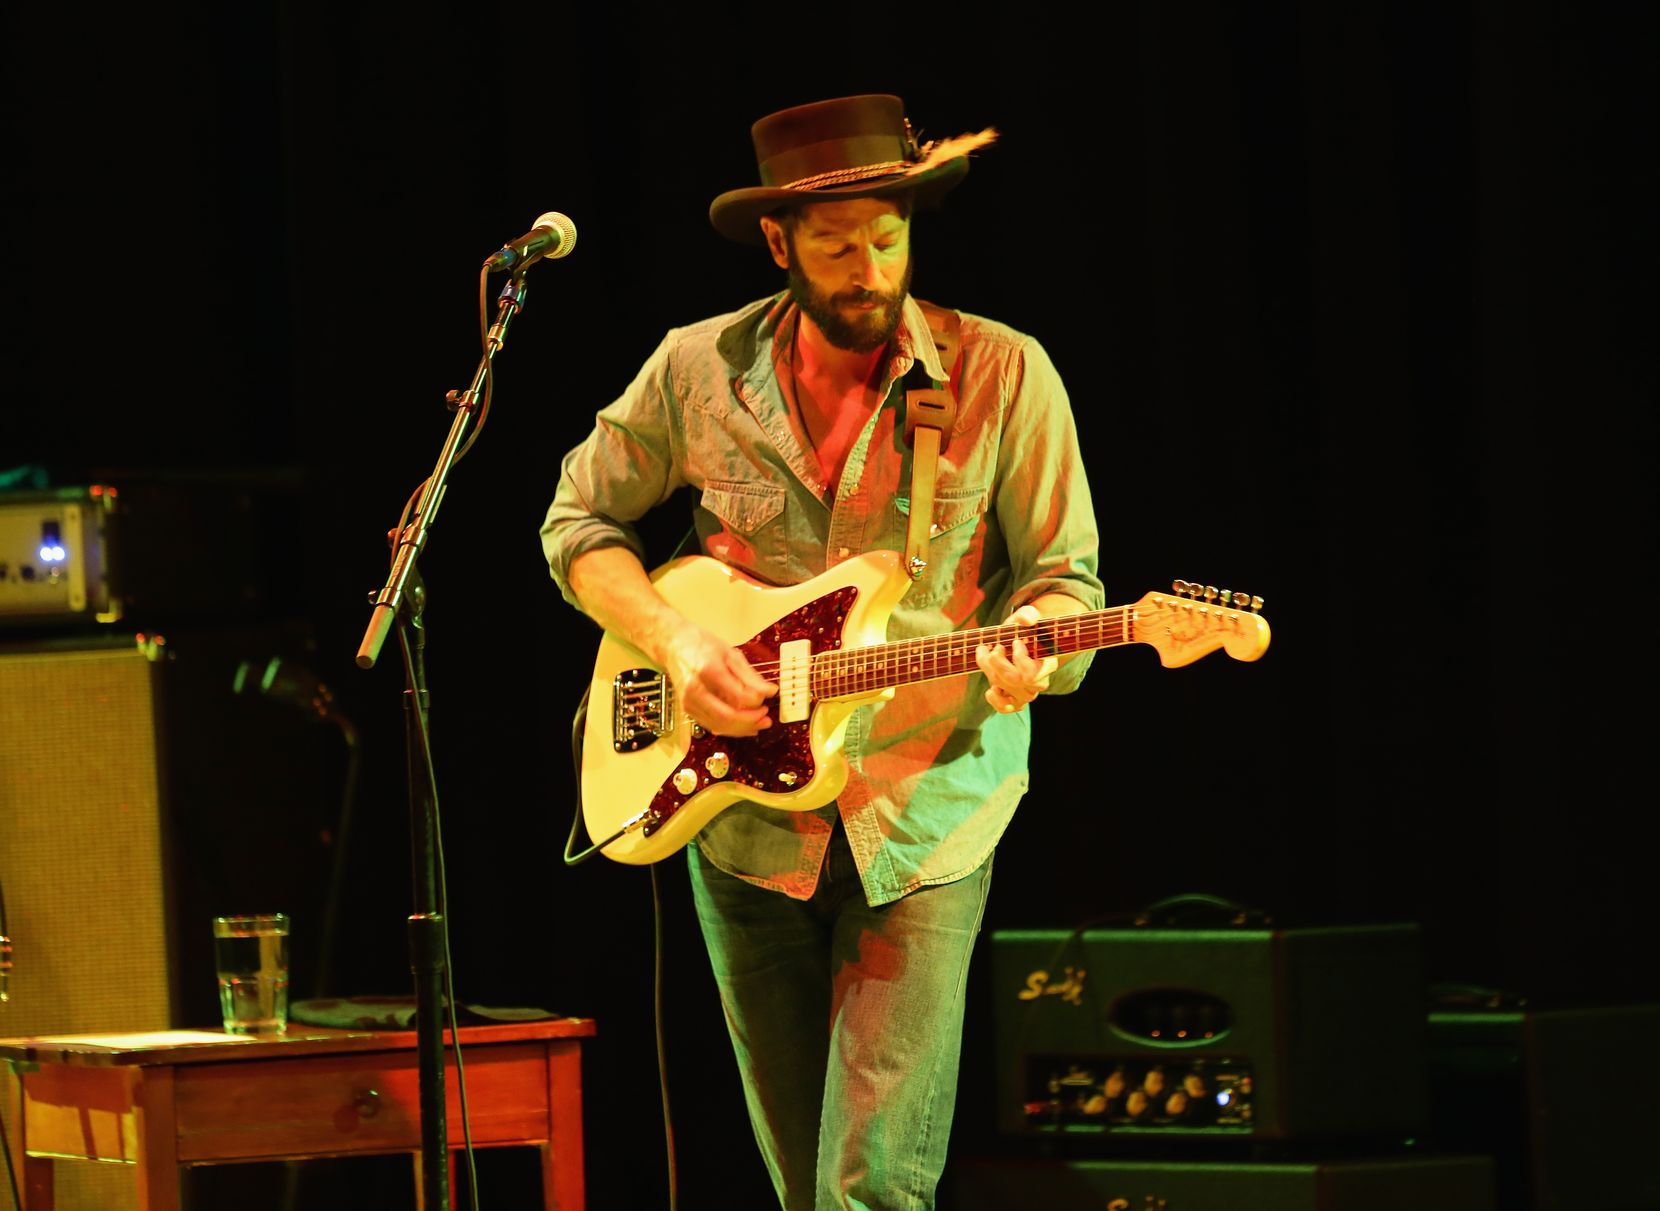 In this May 1, 2014 file photo, Ray LaMontagne performs at Town Hall in New York, N.Y.